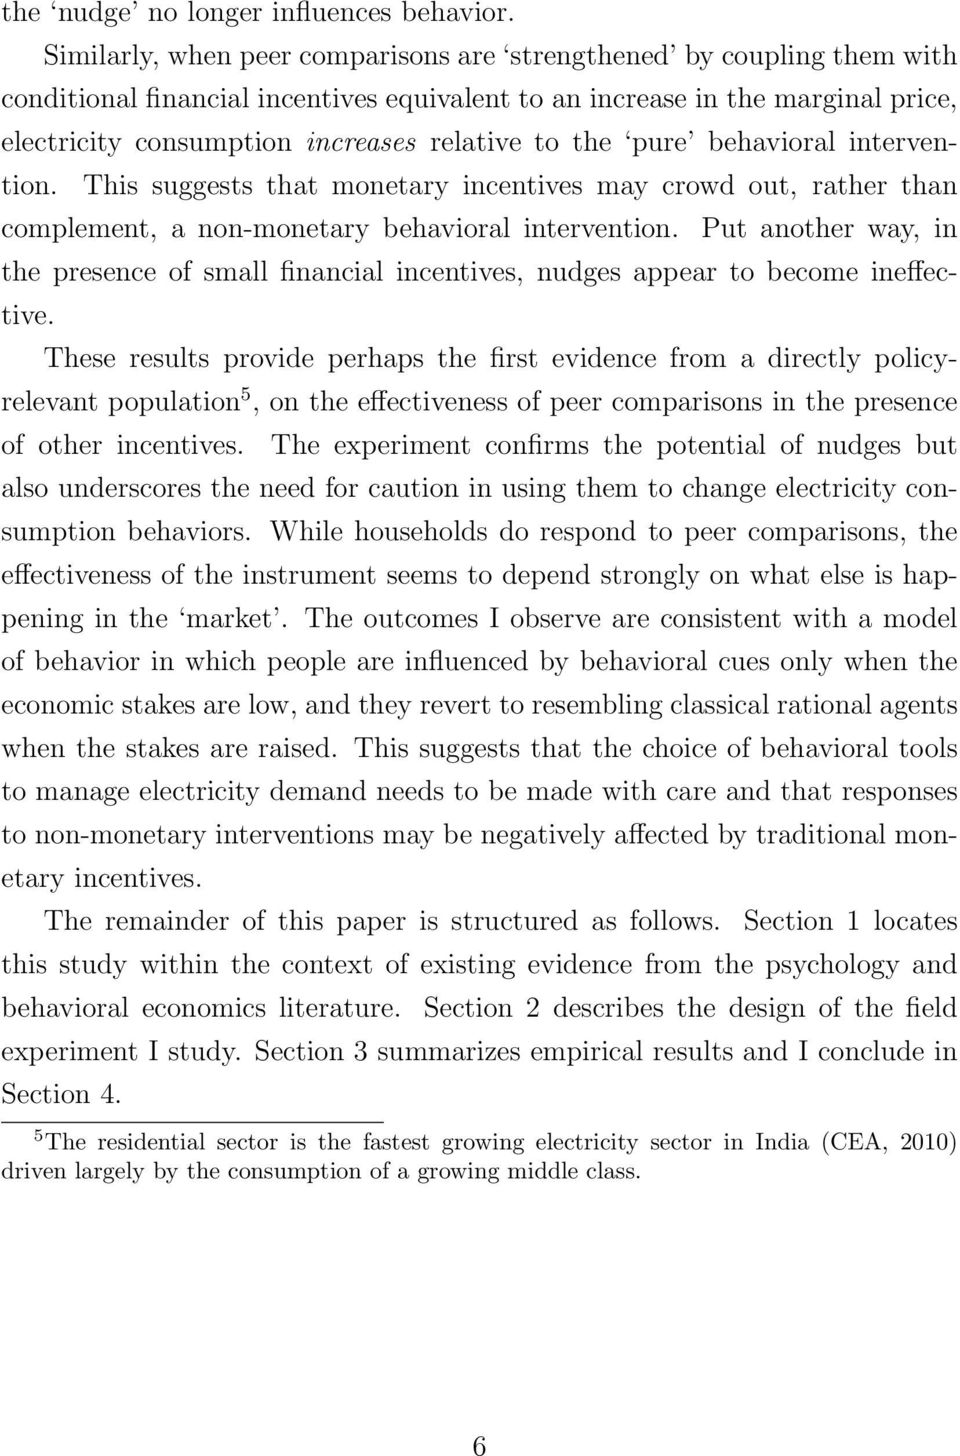 the pure behavioral intervention. This suggests that monetary incentives may crowd out, rather than complement, a non-monetary behavioral intervention.